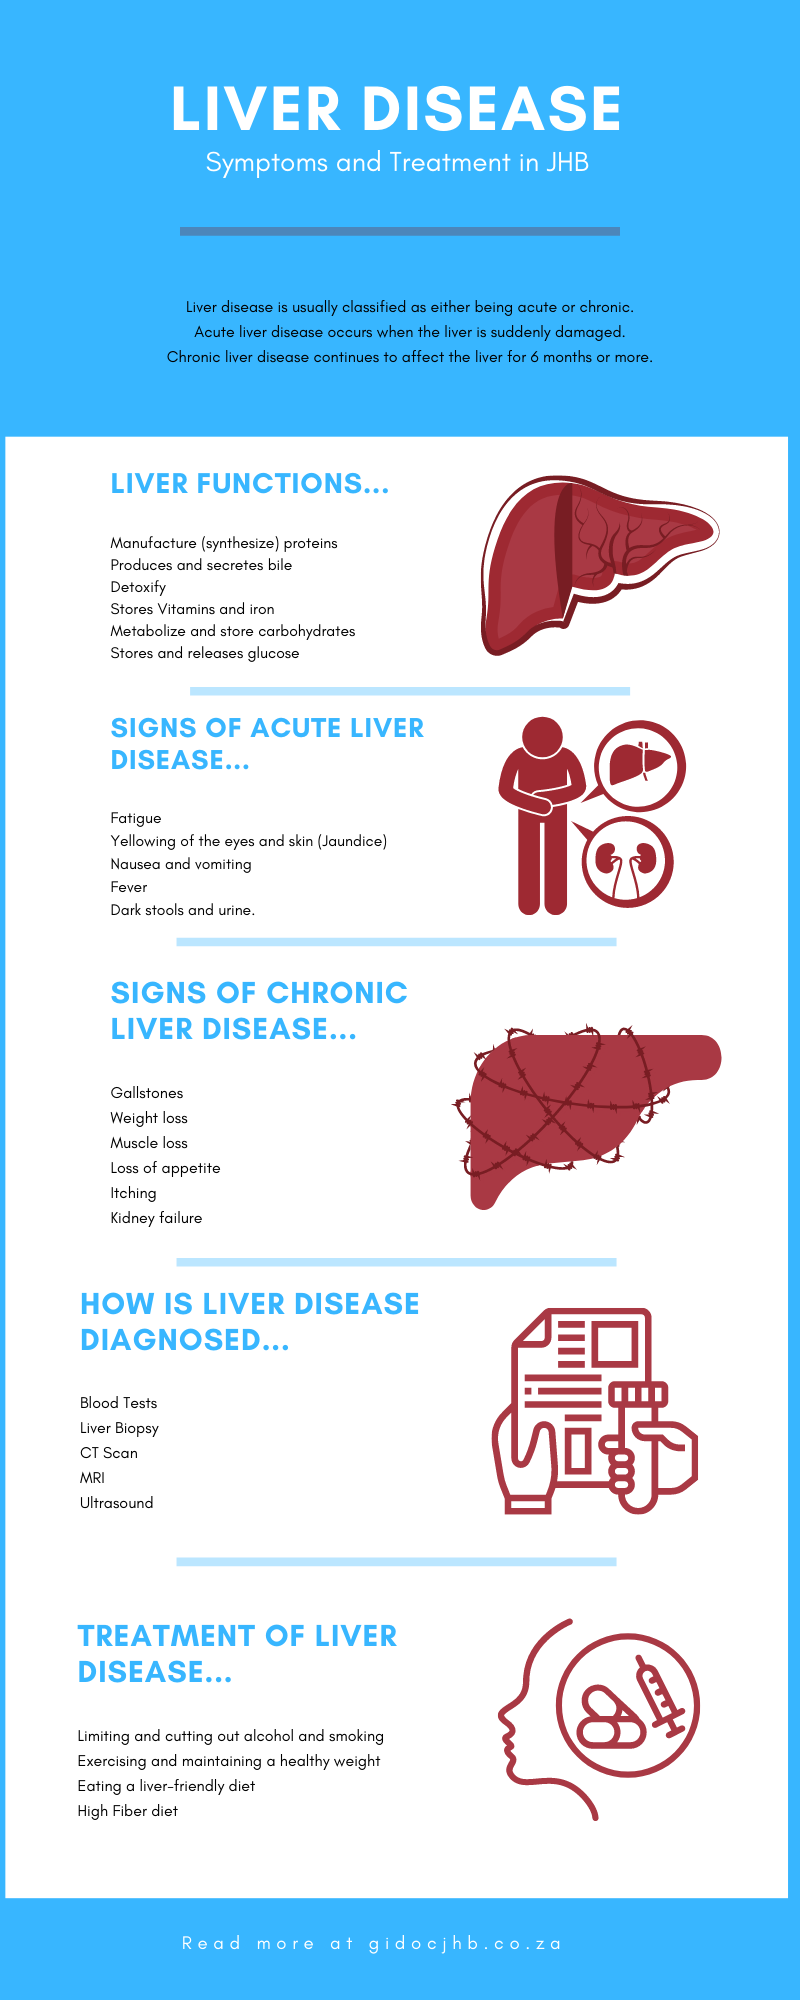 Liver Disease Symptoms and Treatment in JHB - Liver Disease Symptoms and Treatment JHB